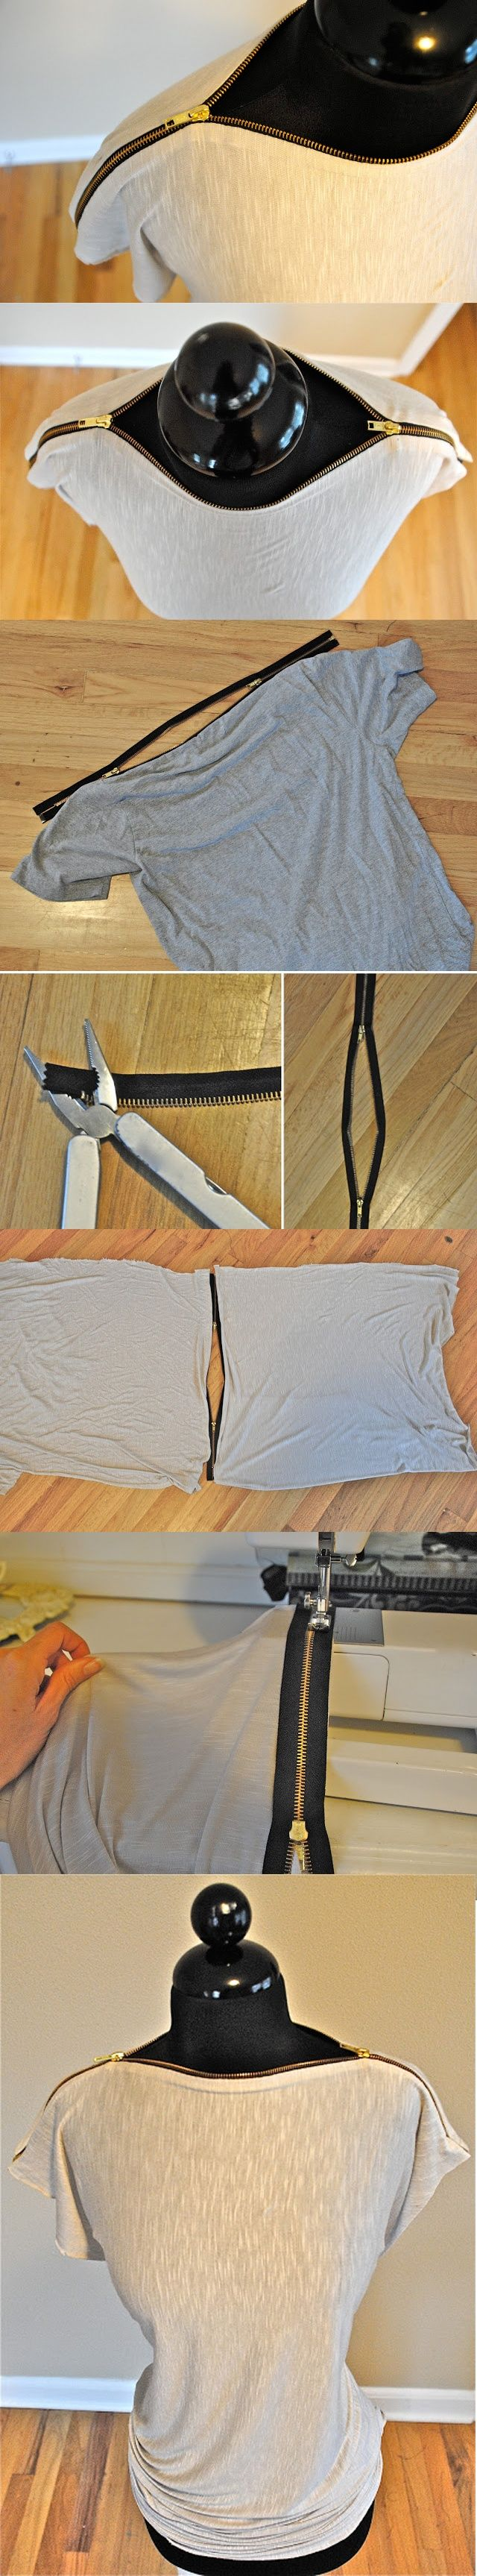 DIY: 12 Fashion Projects. I would do something other than the zipper on the top